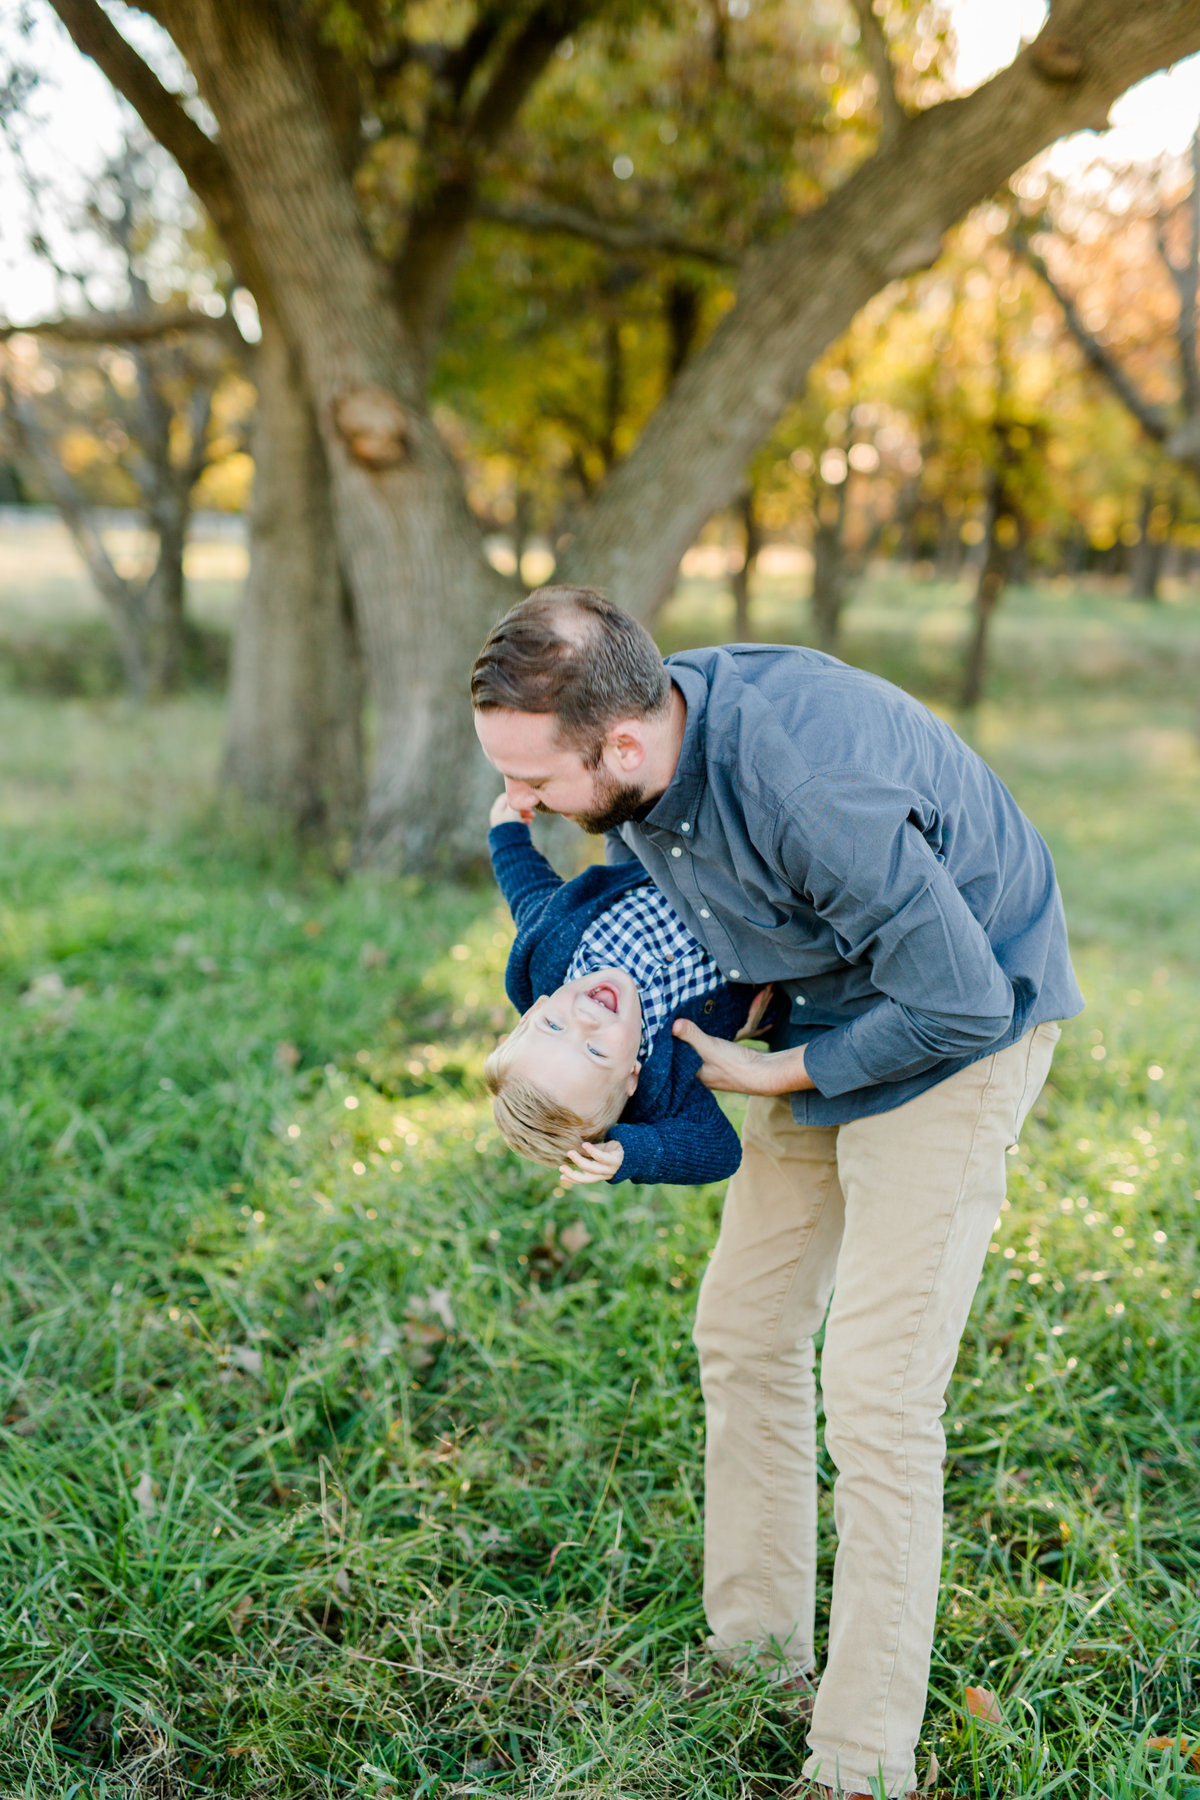 Tulsa-Oklahoma-Family-Photographer-Holly-Felts-Photography-35